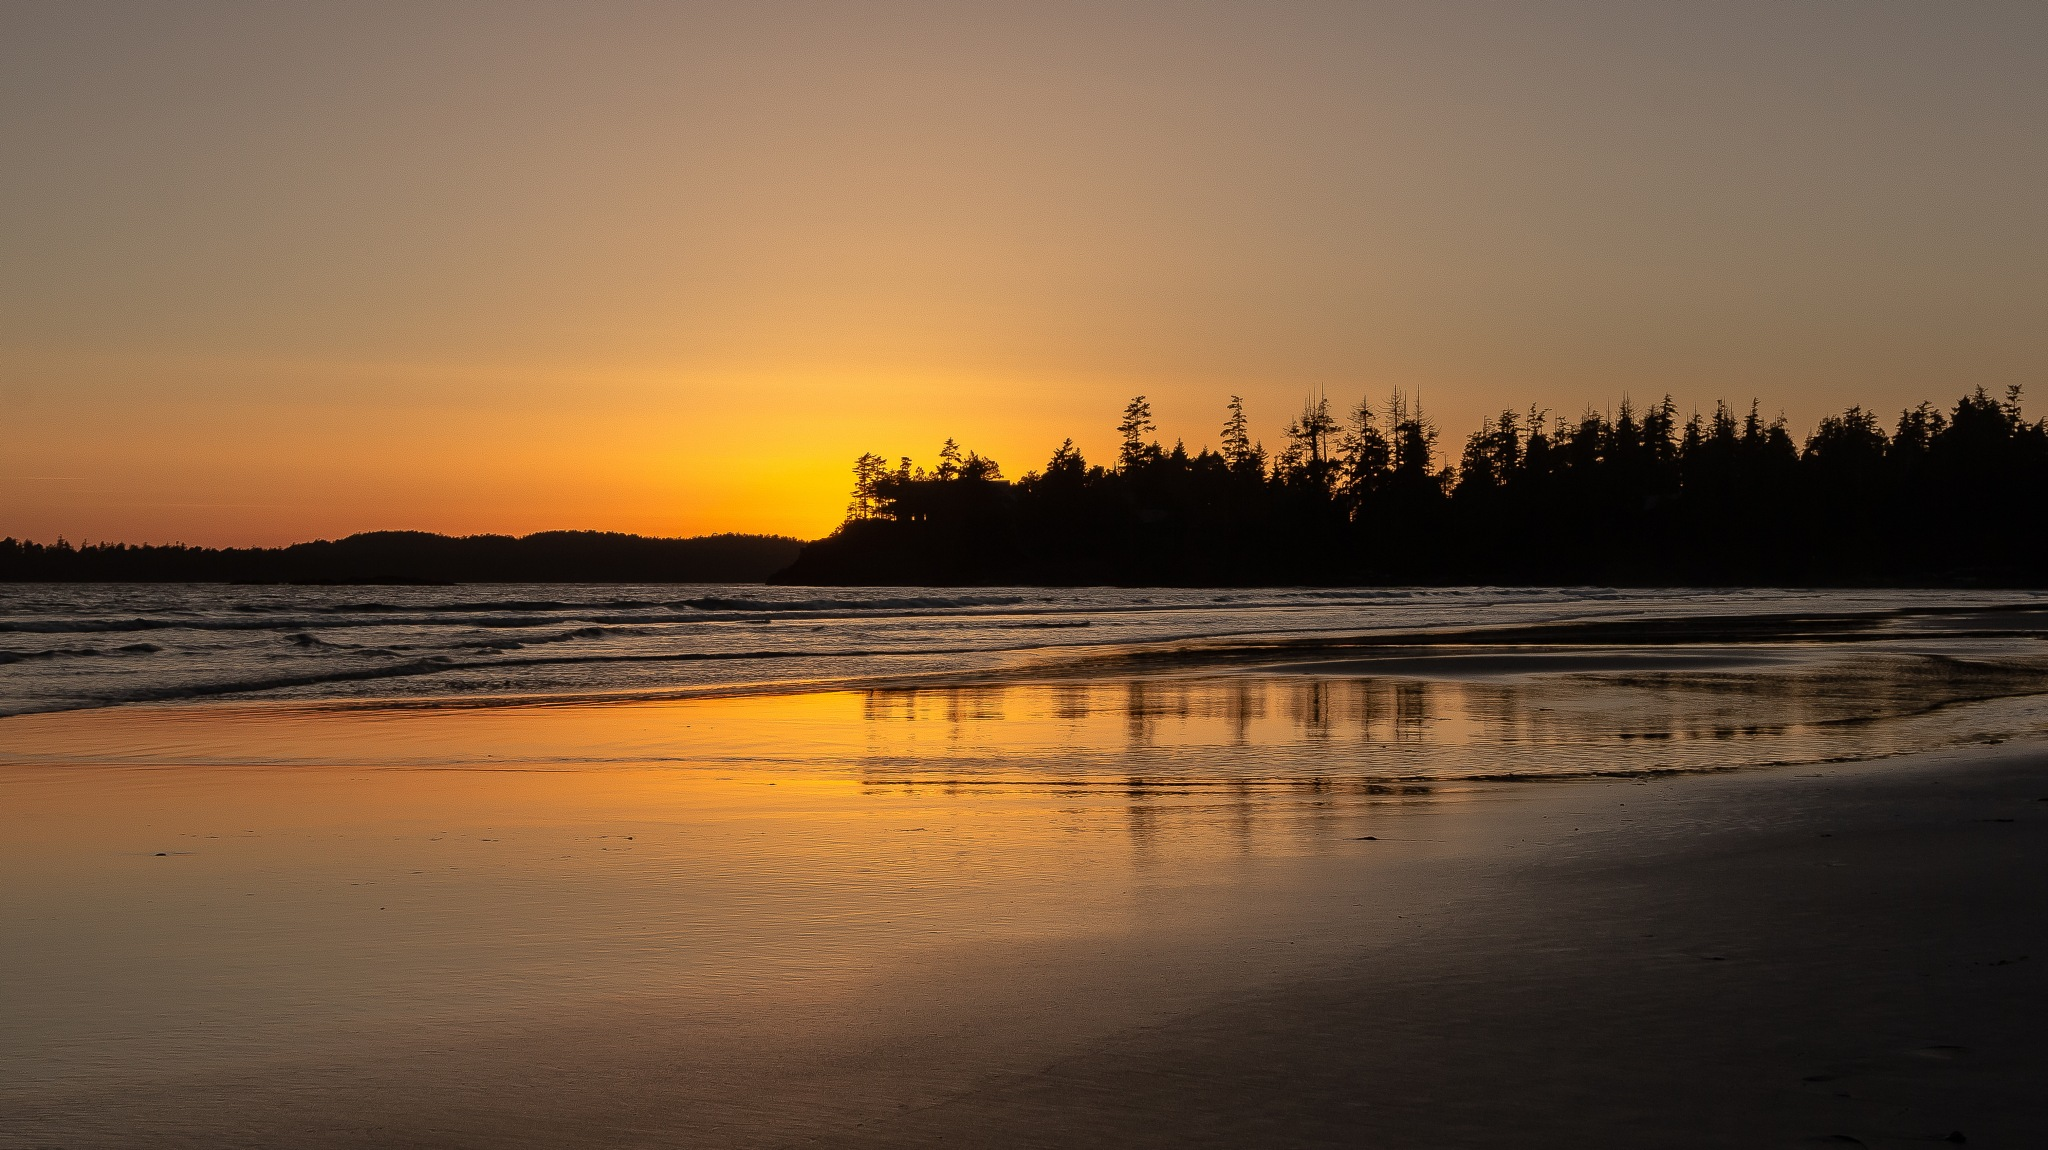 Tofino sunset by ink59